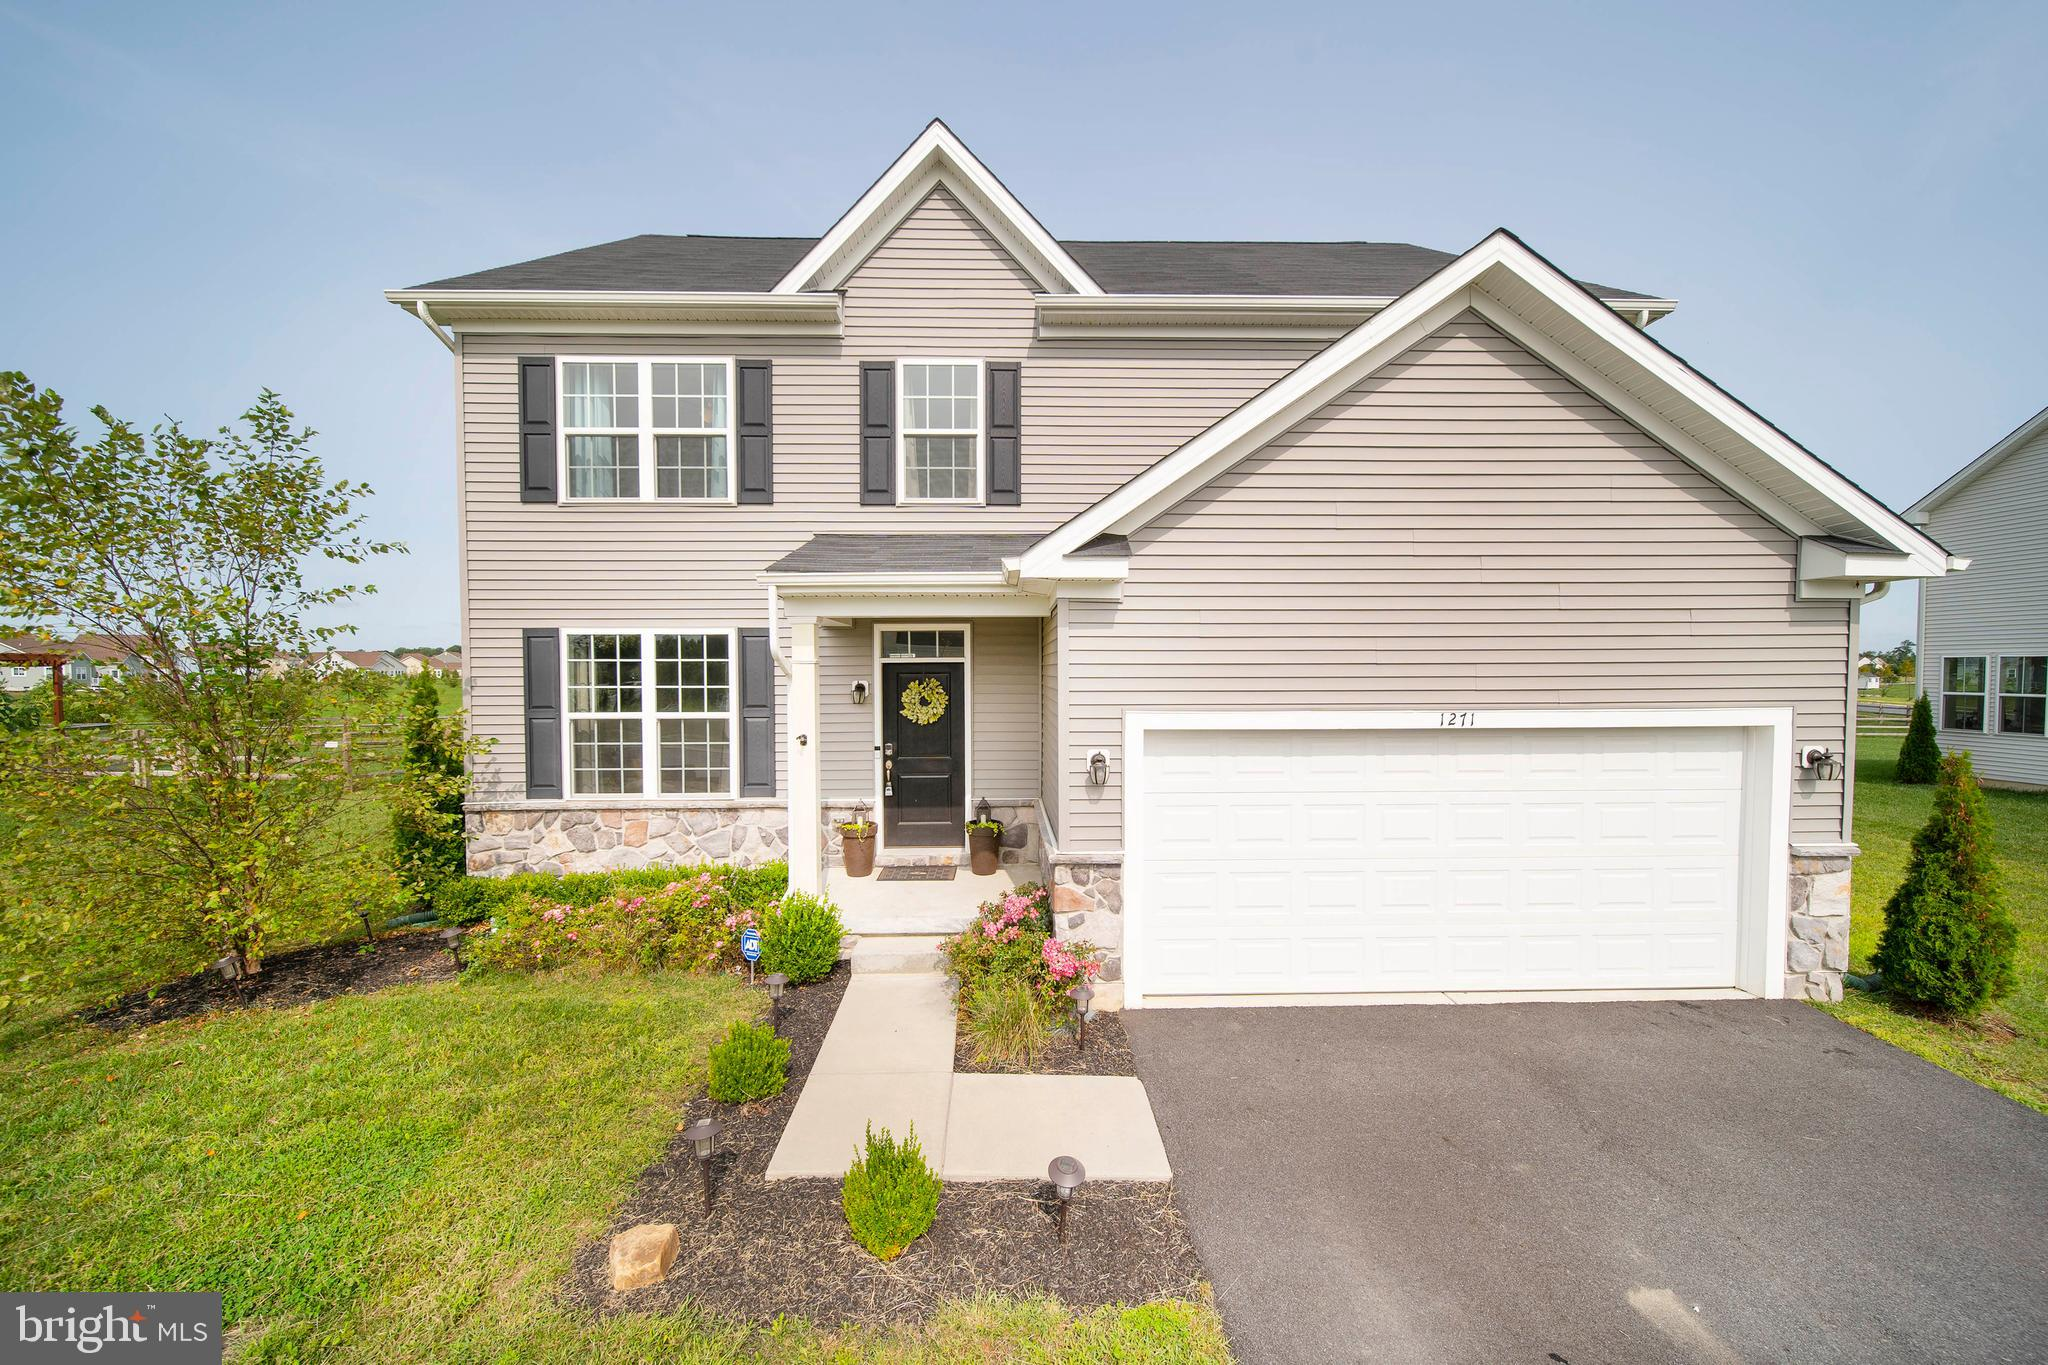 "Nothing left to do but pack your bags and move in!! If you're in search for a STUNNING, move-in ready 5 bedroom, 3.5 bath single family home in the Middletown area - this is THE ONE! Located in the desirable Hyett's Crossing community and offered at a fantastic price with TONS of UPGRADES and OPTIONS, this home is sure to wow! BONUS, this street is conveniently connected to the Village of Bayberry which will allow you to enjoy easy walks, trails and parks! This home is only 3 YEARS OLD with many of the items in the home still under warranty for added peace of mind. Enter this gorgeous home and you'll immediately fall in love with the bright and open foyer with wide-plank hardwood floors throughout the entire first floor. As you walk a little further, admire the main level open floor plan with recessed lighting - which features a spacious family room with a custom 60-inch linear gas fireplace, customized concrete fire place mantle, in ceiling surround sound system, half bath and spacious dining area with lots of natural light! The spacious kitchen boasts 42"" soft close white cabinets, custom over island light pendants, gorgeous granite countertops, an enormous island, and energy star stainless steel appliances including a double wall oven! Just off this area is a large dining room with access to your 2-car finished garage with epoxy flooring! This level also has easy access to the backyard, which features a large trex deck and large half-moon stamped concrete patio for the entertainers. Backing up to open space, the outside entertainment space allows you to enjoy beautiful sunsets from your backyard.  Make your way upstairs and you're met with a cozy loft with more recessed lighting- providing extra space for entertainment and relaxation! Down the hall you'll find your laundry room, a hall bathroom with jack and jill sink and combo tub/shower bath, and 4 spacious bedrooms including a master suite. The master suite features an en suite bathroom with a double sink, a tiled spa-shower with a seat and 2 large walk-in closets. The 2nd floor and basement of the home has like new plush carpeting. Already sound like a dream? Well, there is MORE! This home also comes with a full, finished basement complete with another bedroom with walk in closet,  full bathroom with tile floors and shower, and additional area with recessed lighting to make entertaining a blast! In total, this home has over 3,000 of functional living space with countless amazing features - all at a wonderful price! Don't miss your opportunity to tour this GEM today!"